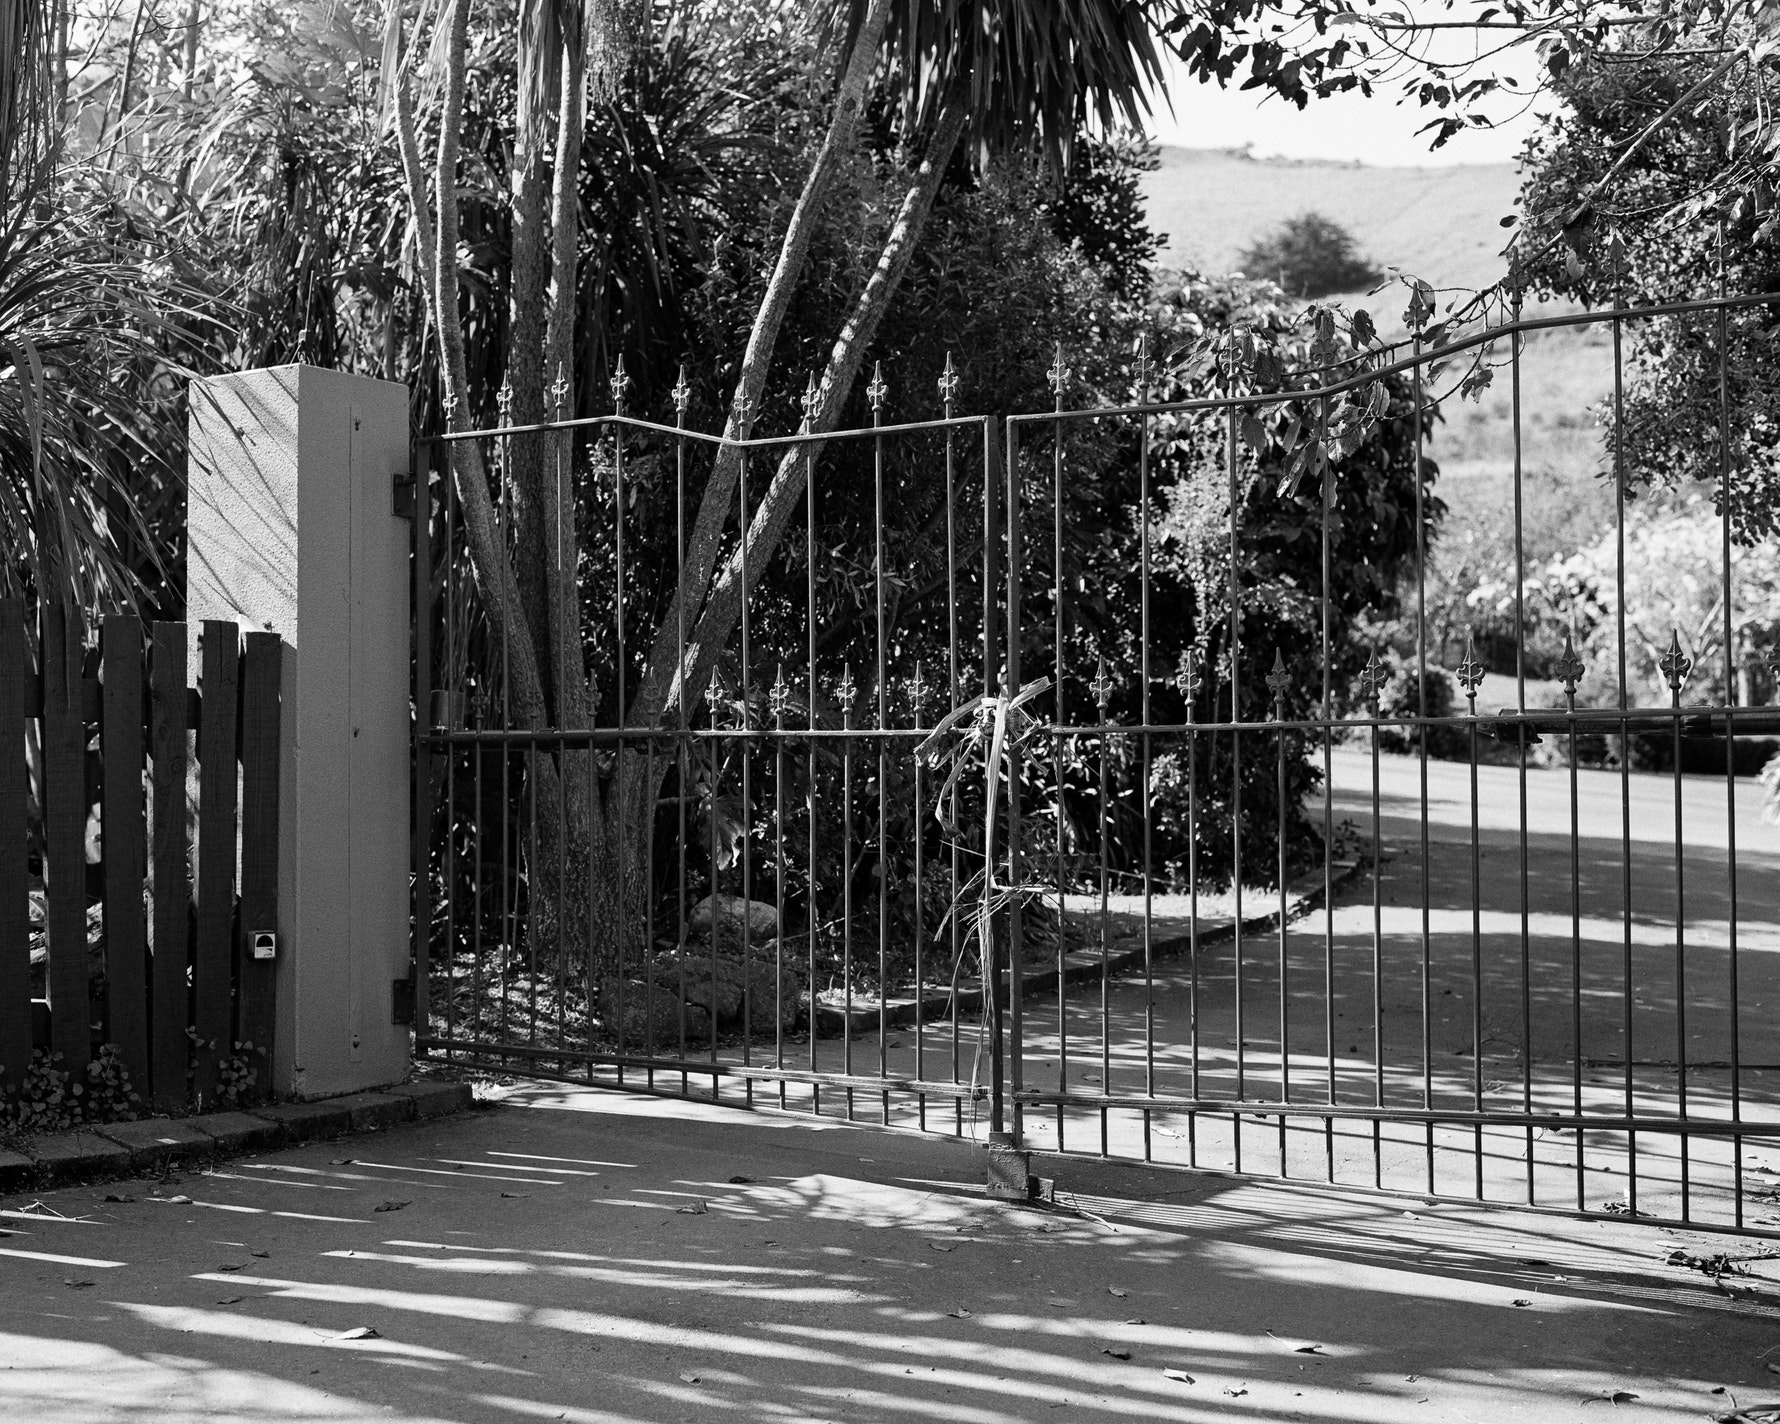 Cabbage tree leaves tie together the gate of a home on Omaru Road, Rāpaki.